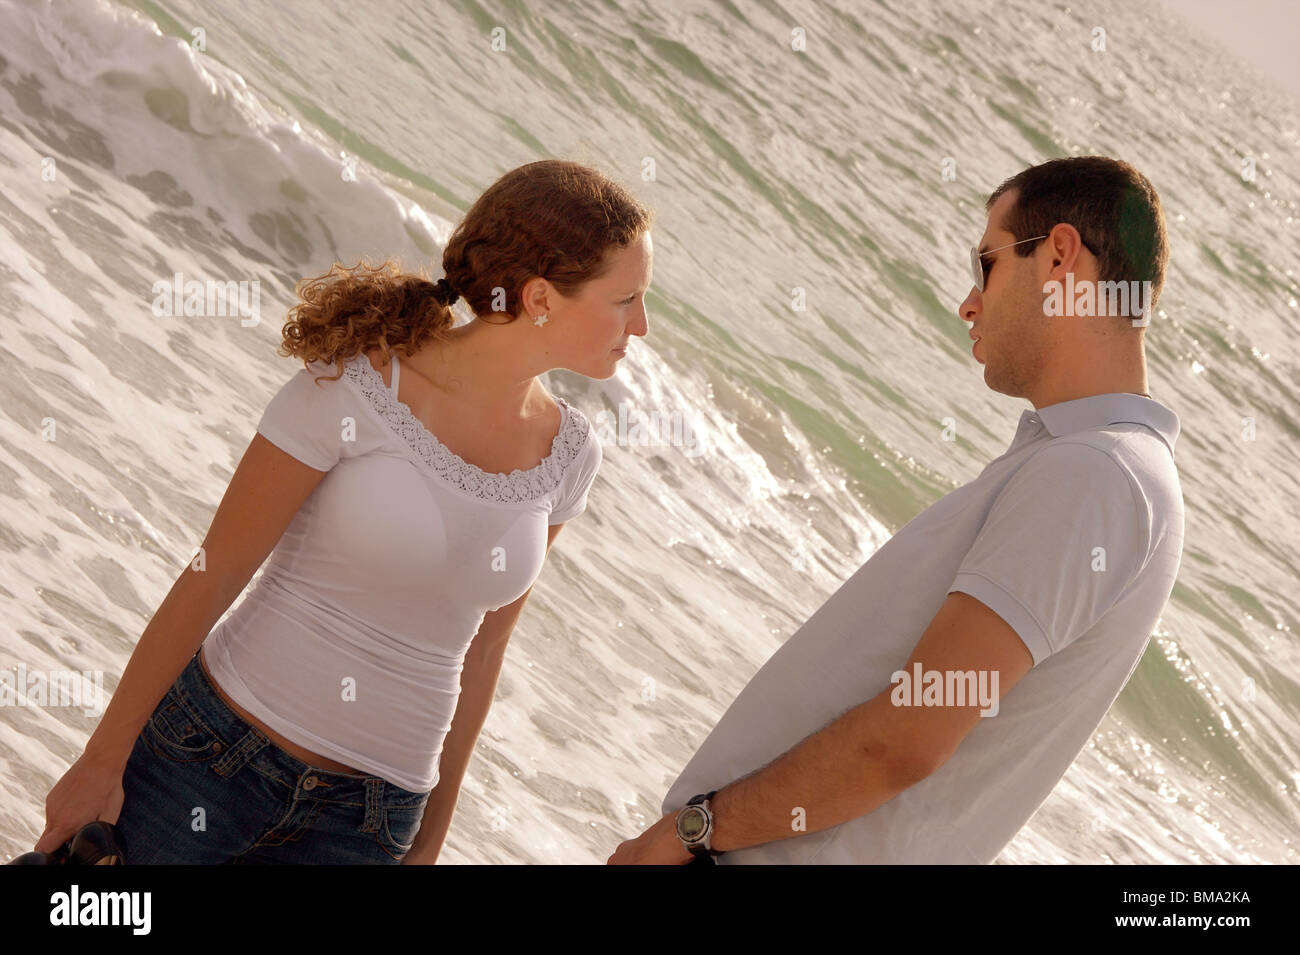 Young Couple At The Beach In The Gulf Of Mexico Having A Serious Talk At The